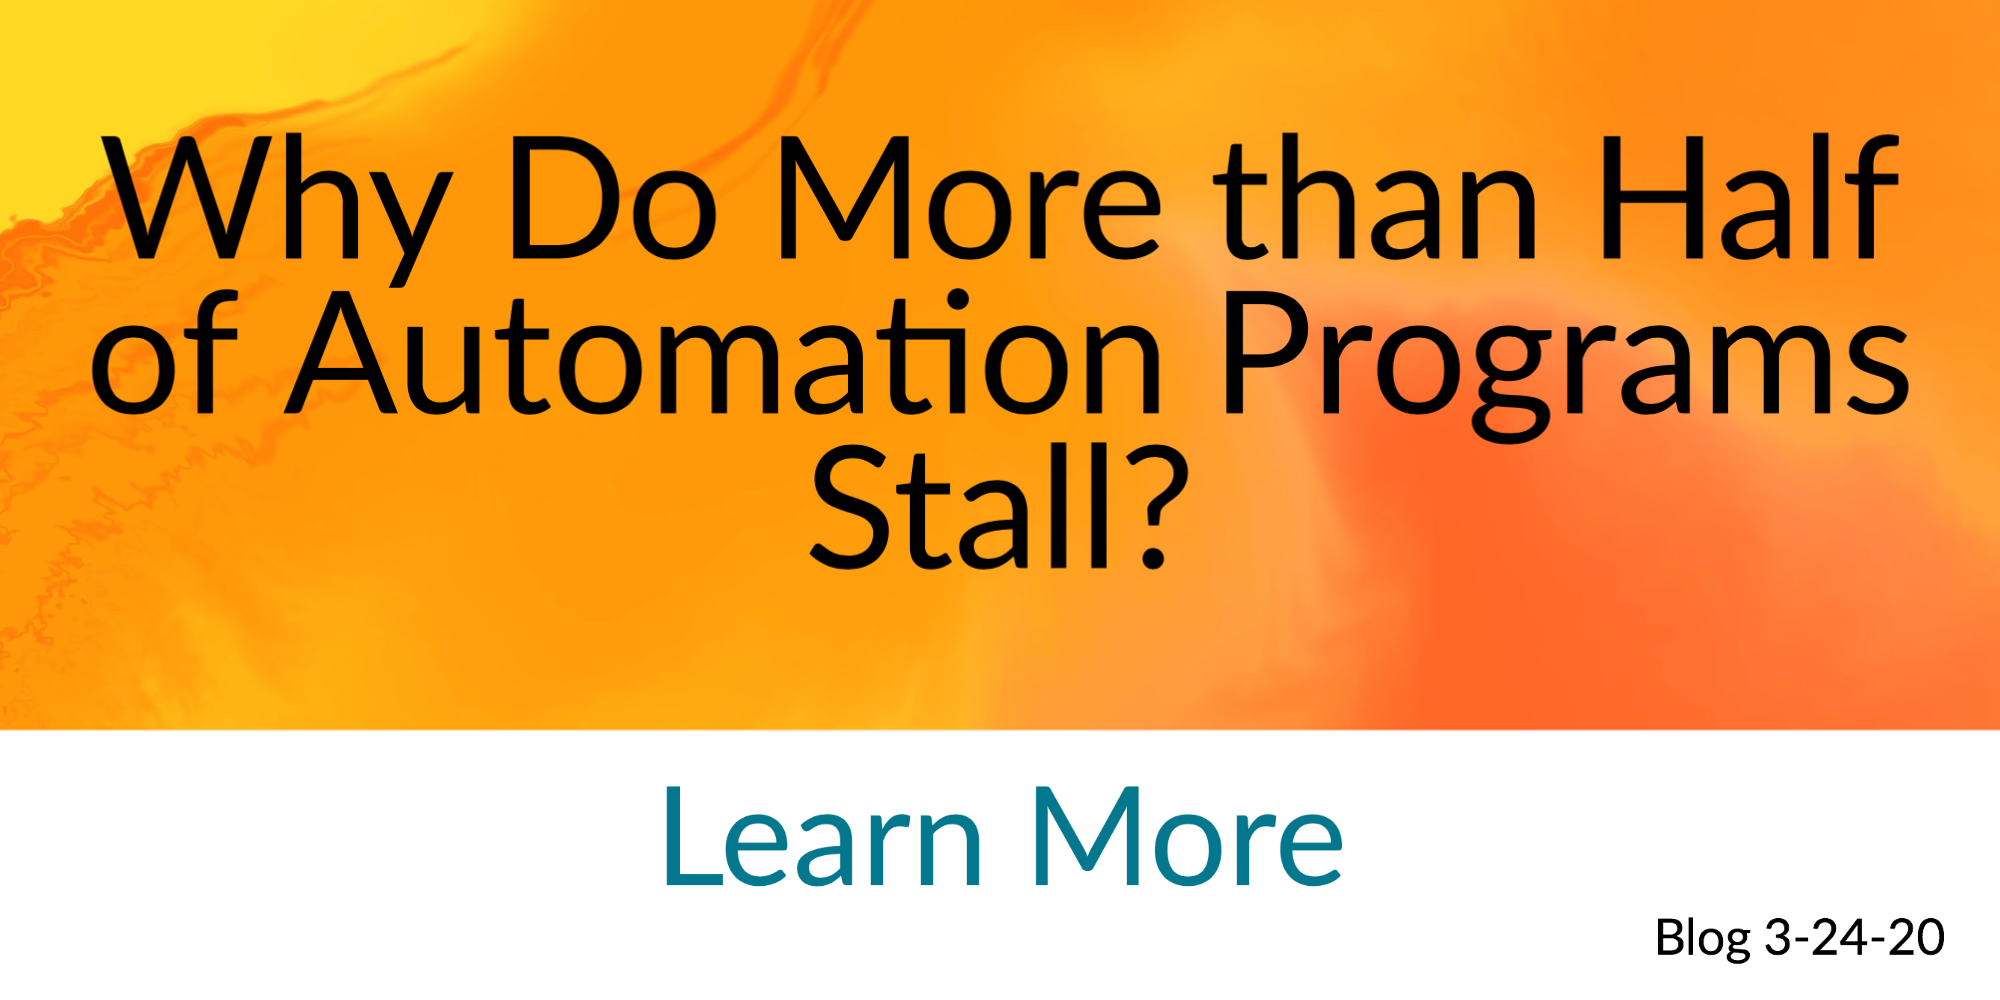 Why Do More than Half of Automation Programs Stall? Lack of Design Authority